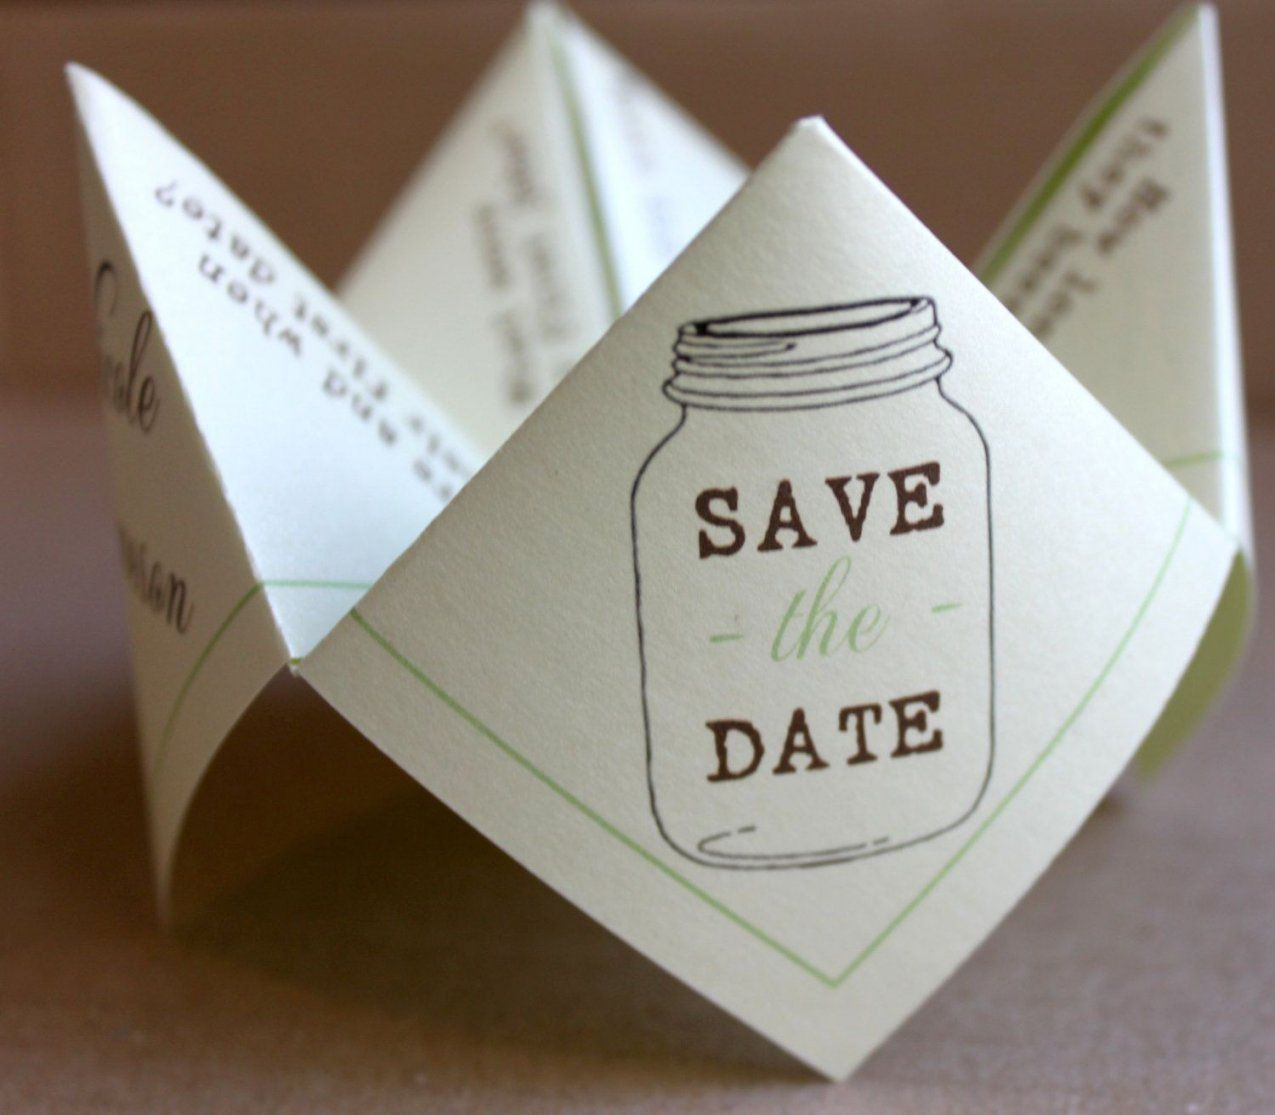 26 Best Of Sammlung Um Hochzeitseinladungen Originell Brilliantly von Save The Date Originell Photo